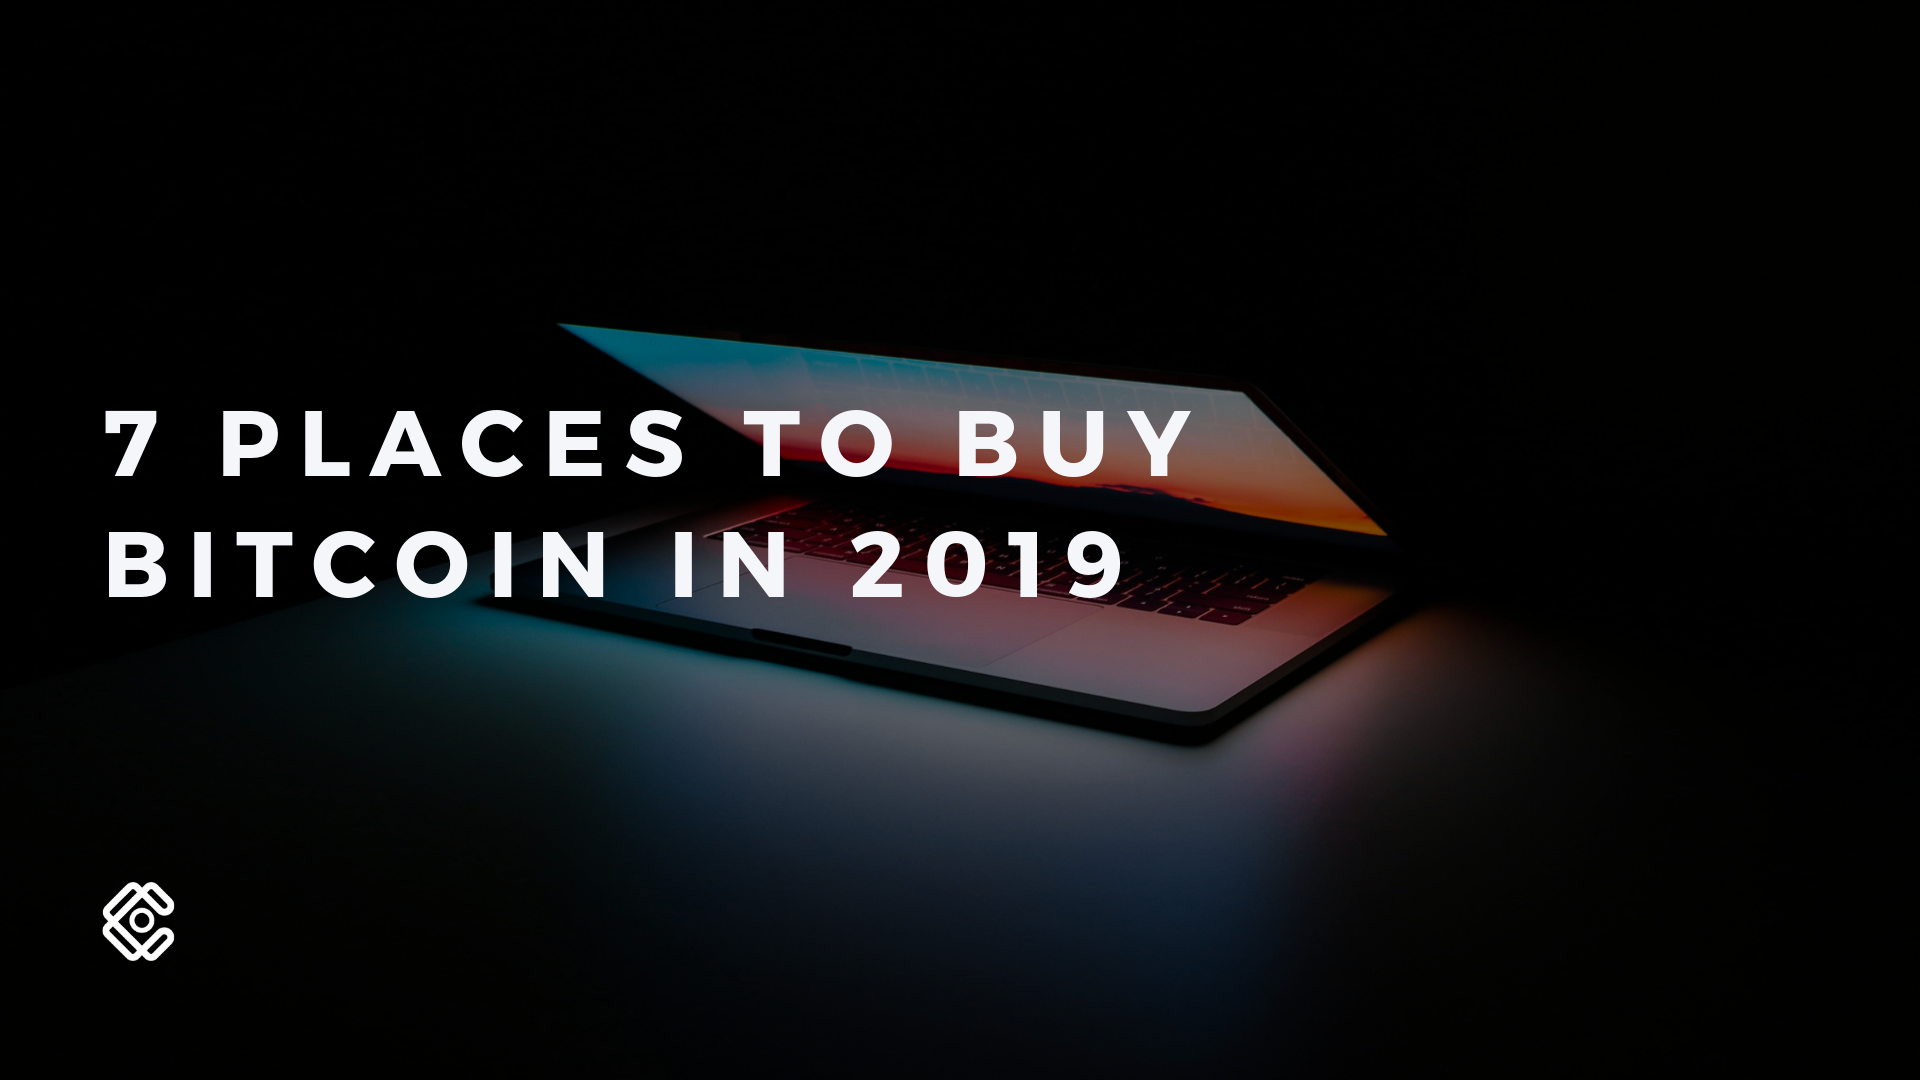 PLACESBUYBITCOIN 1